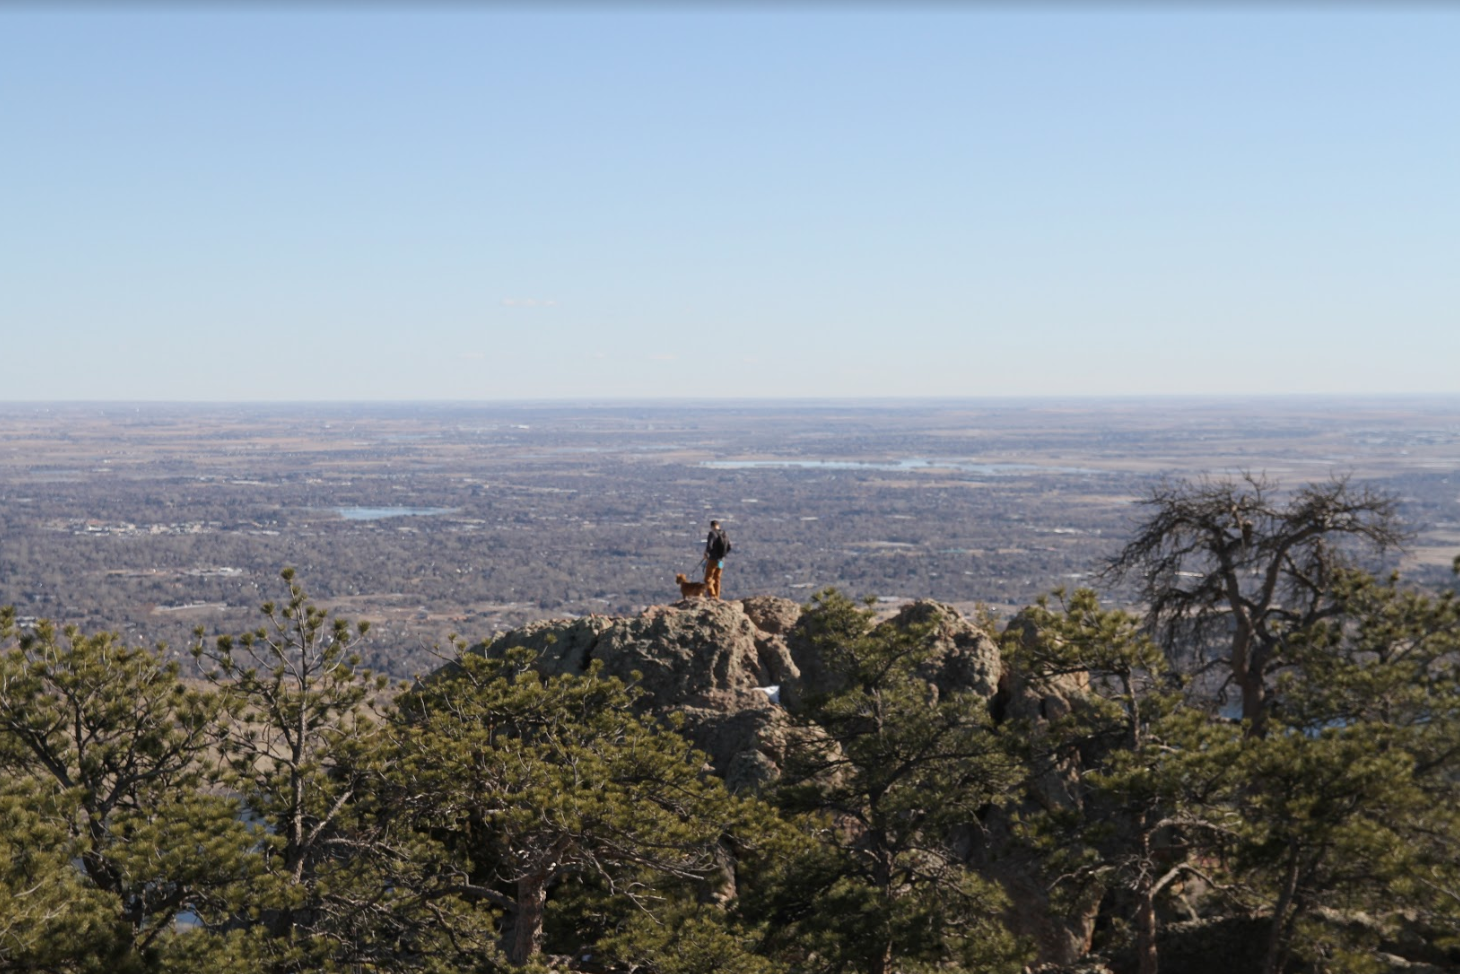 Hiking Arthur's Rock – A Quick And Beautiful Fort Collins Hike